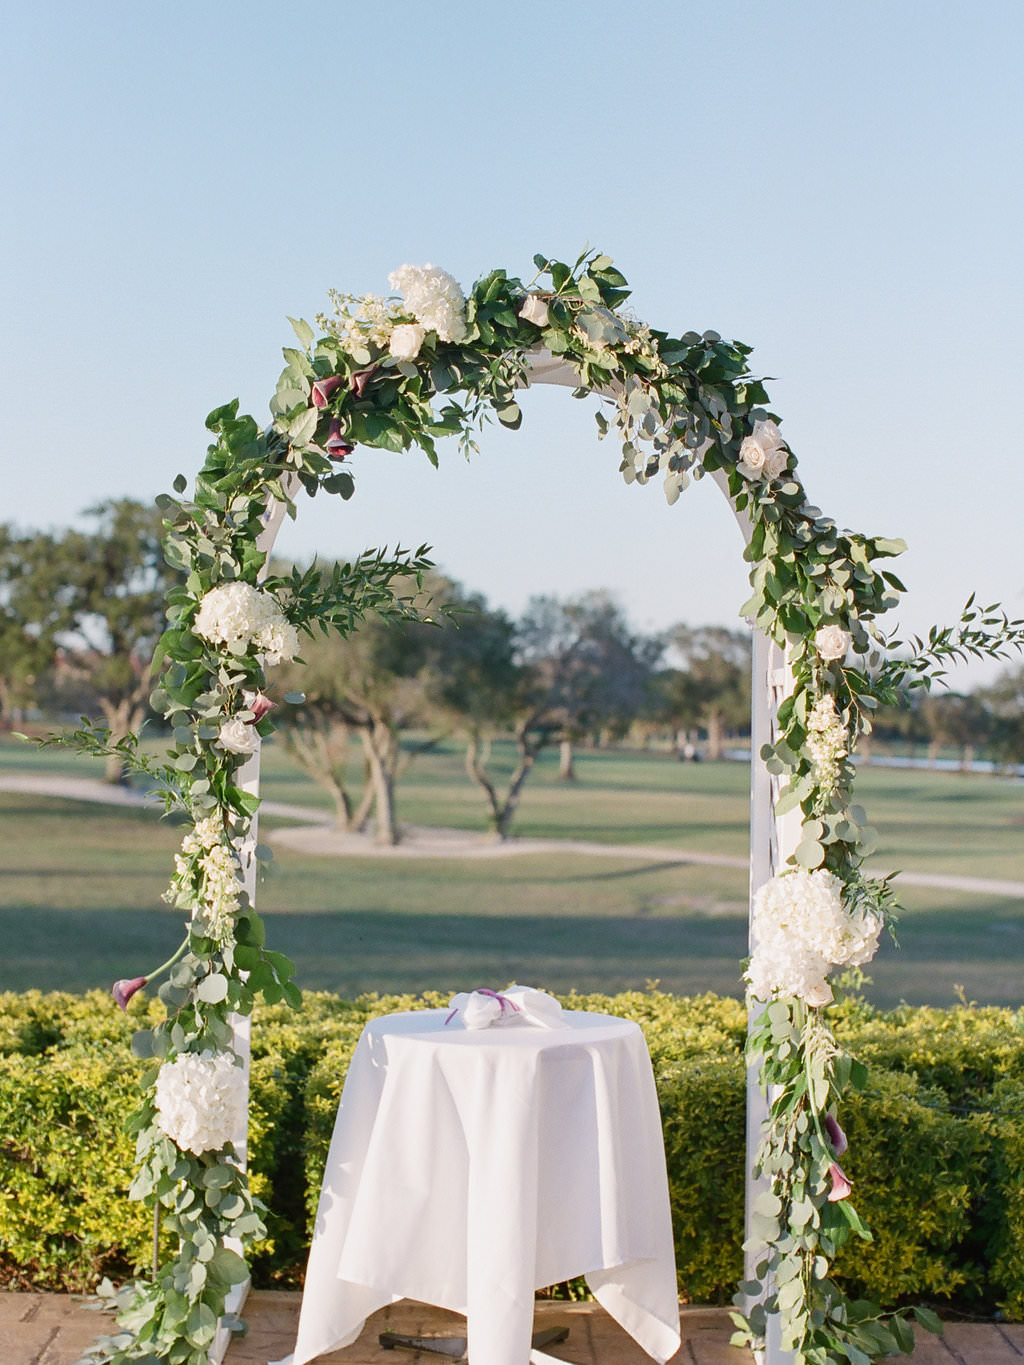 Organic Greenery, White Hydrangeas, and White Flower Inspired Ceremony Arch Chuppah Decor for Outdoor Wedding   Clearwater Wedding Venue Feather Sound Country Club Wedding